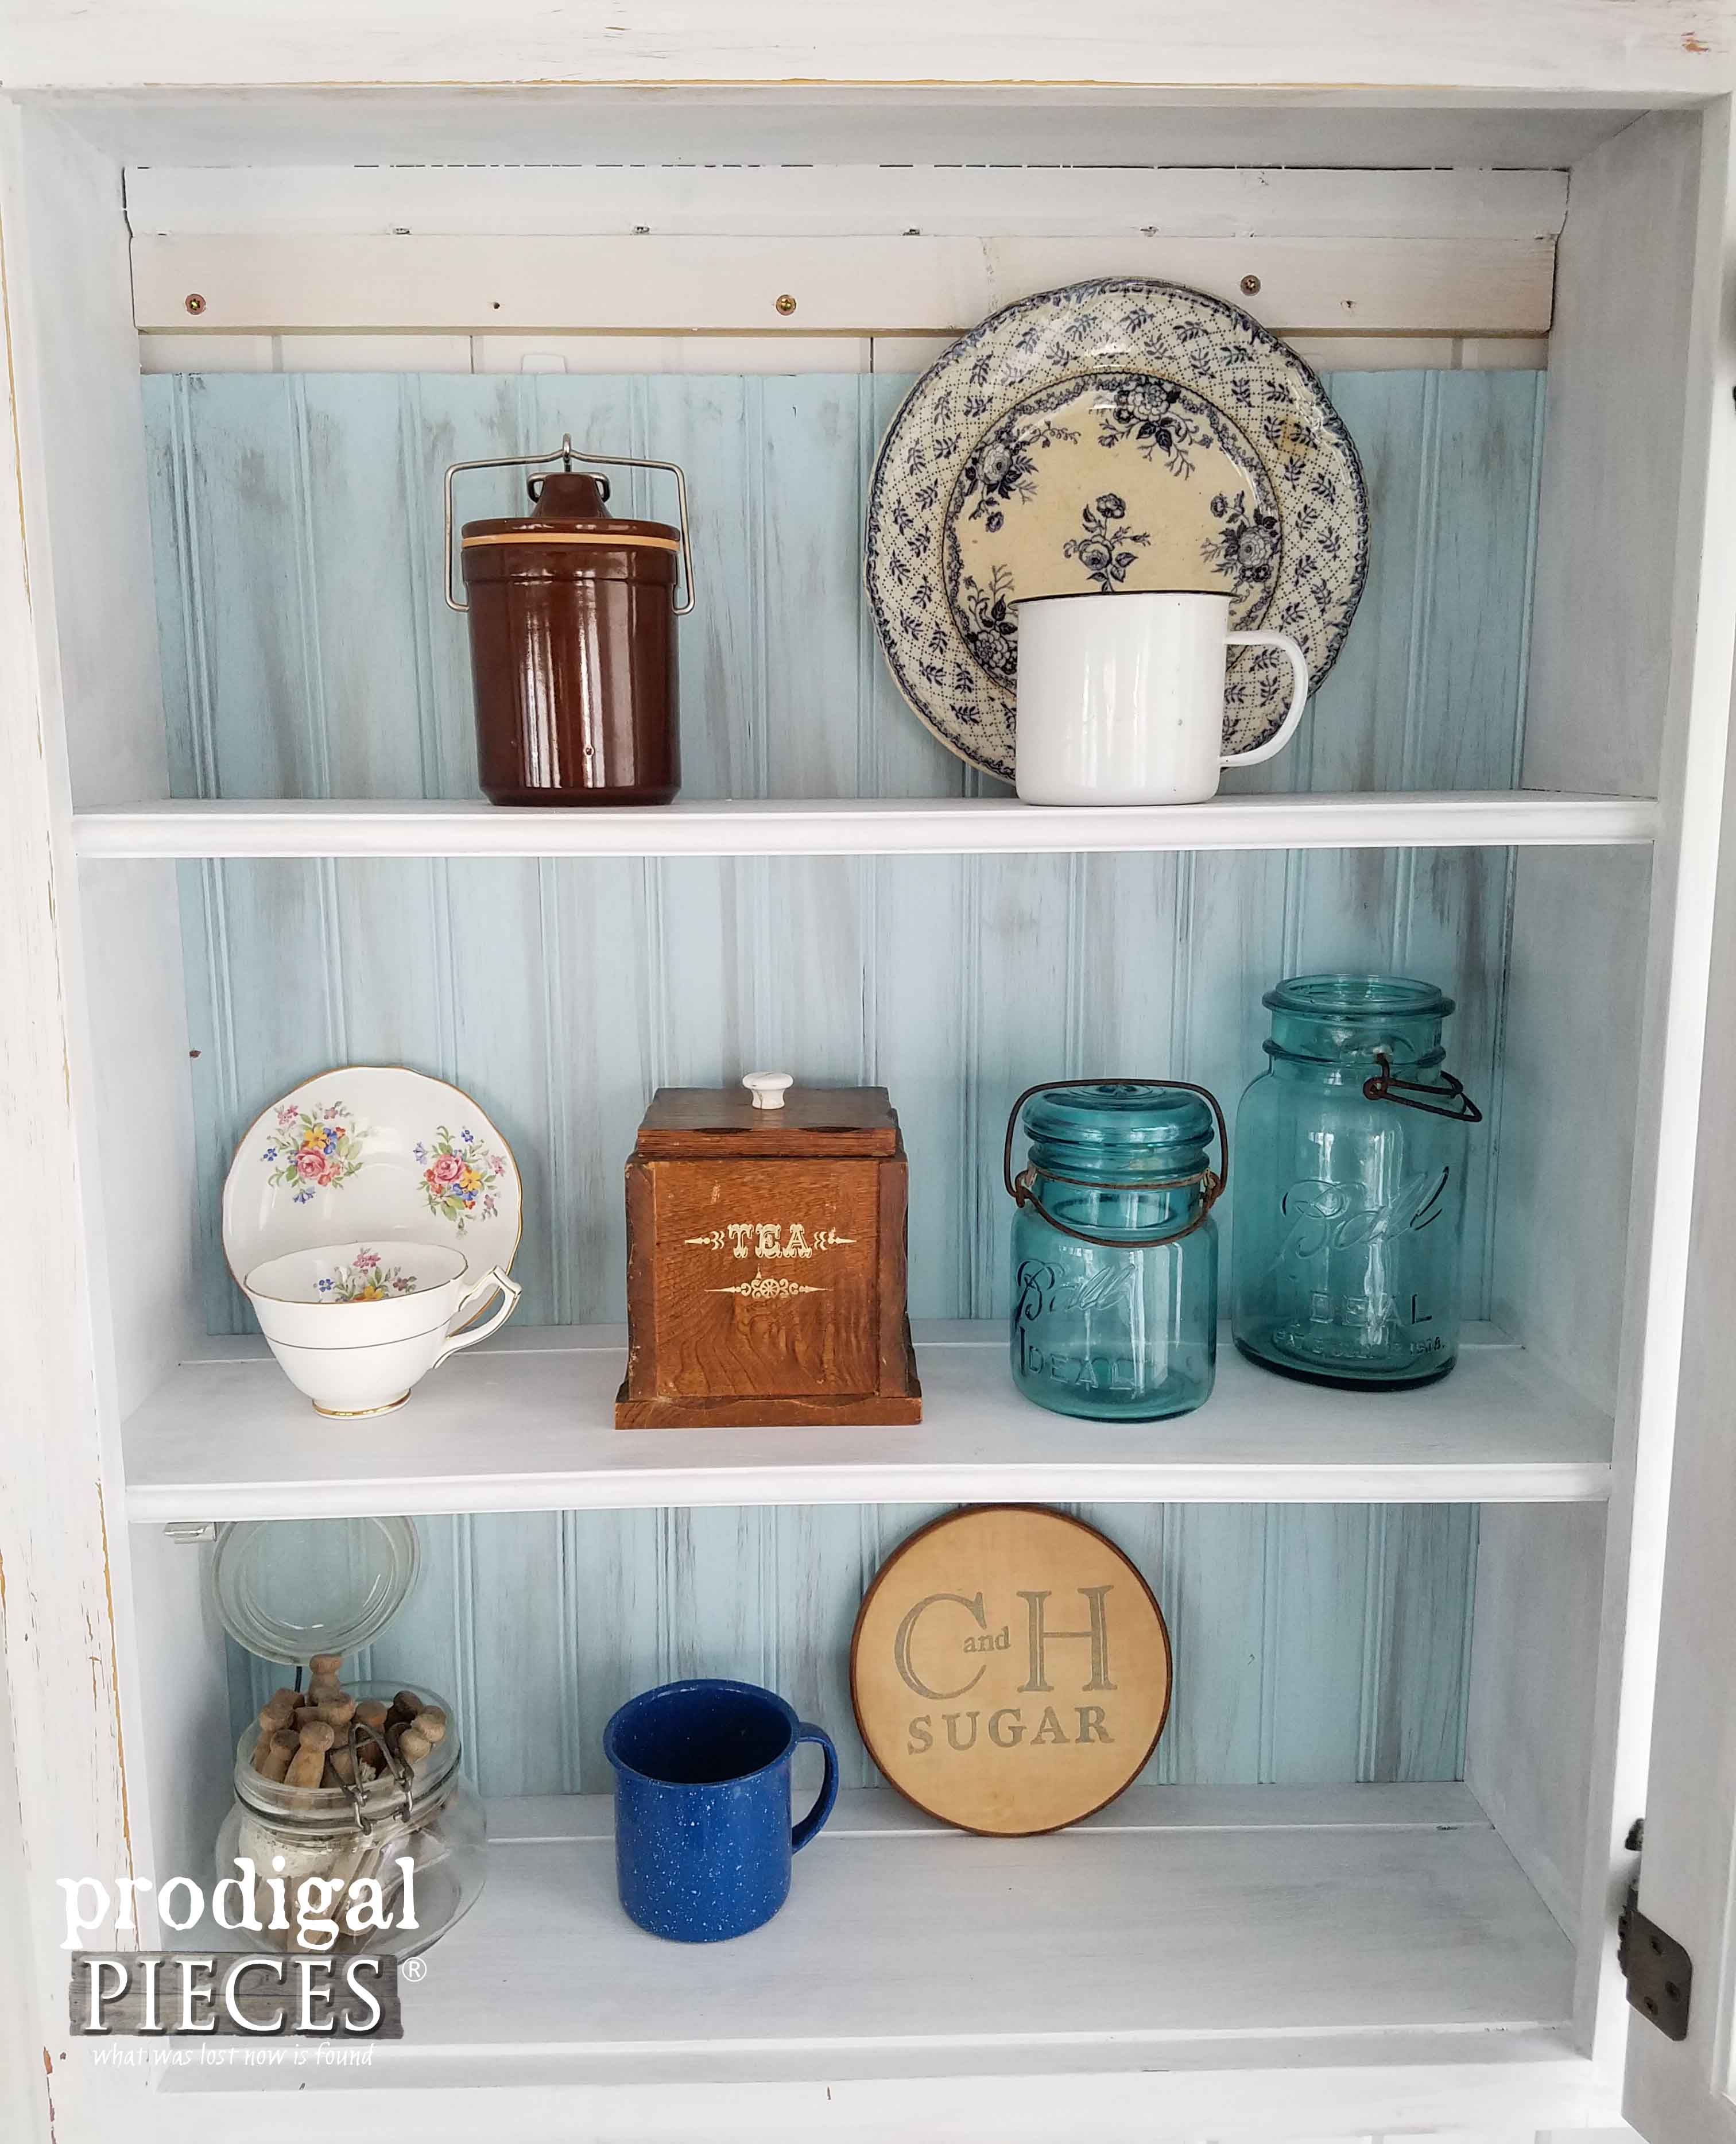 Farmhouse Kitchen Vignette in Cupboard by Prodigal Pieces | prodigalpieces.com